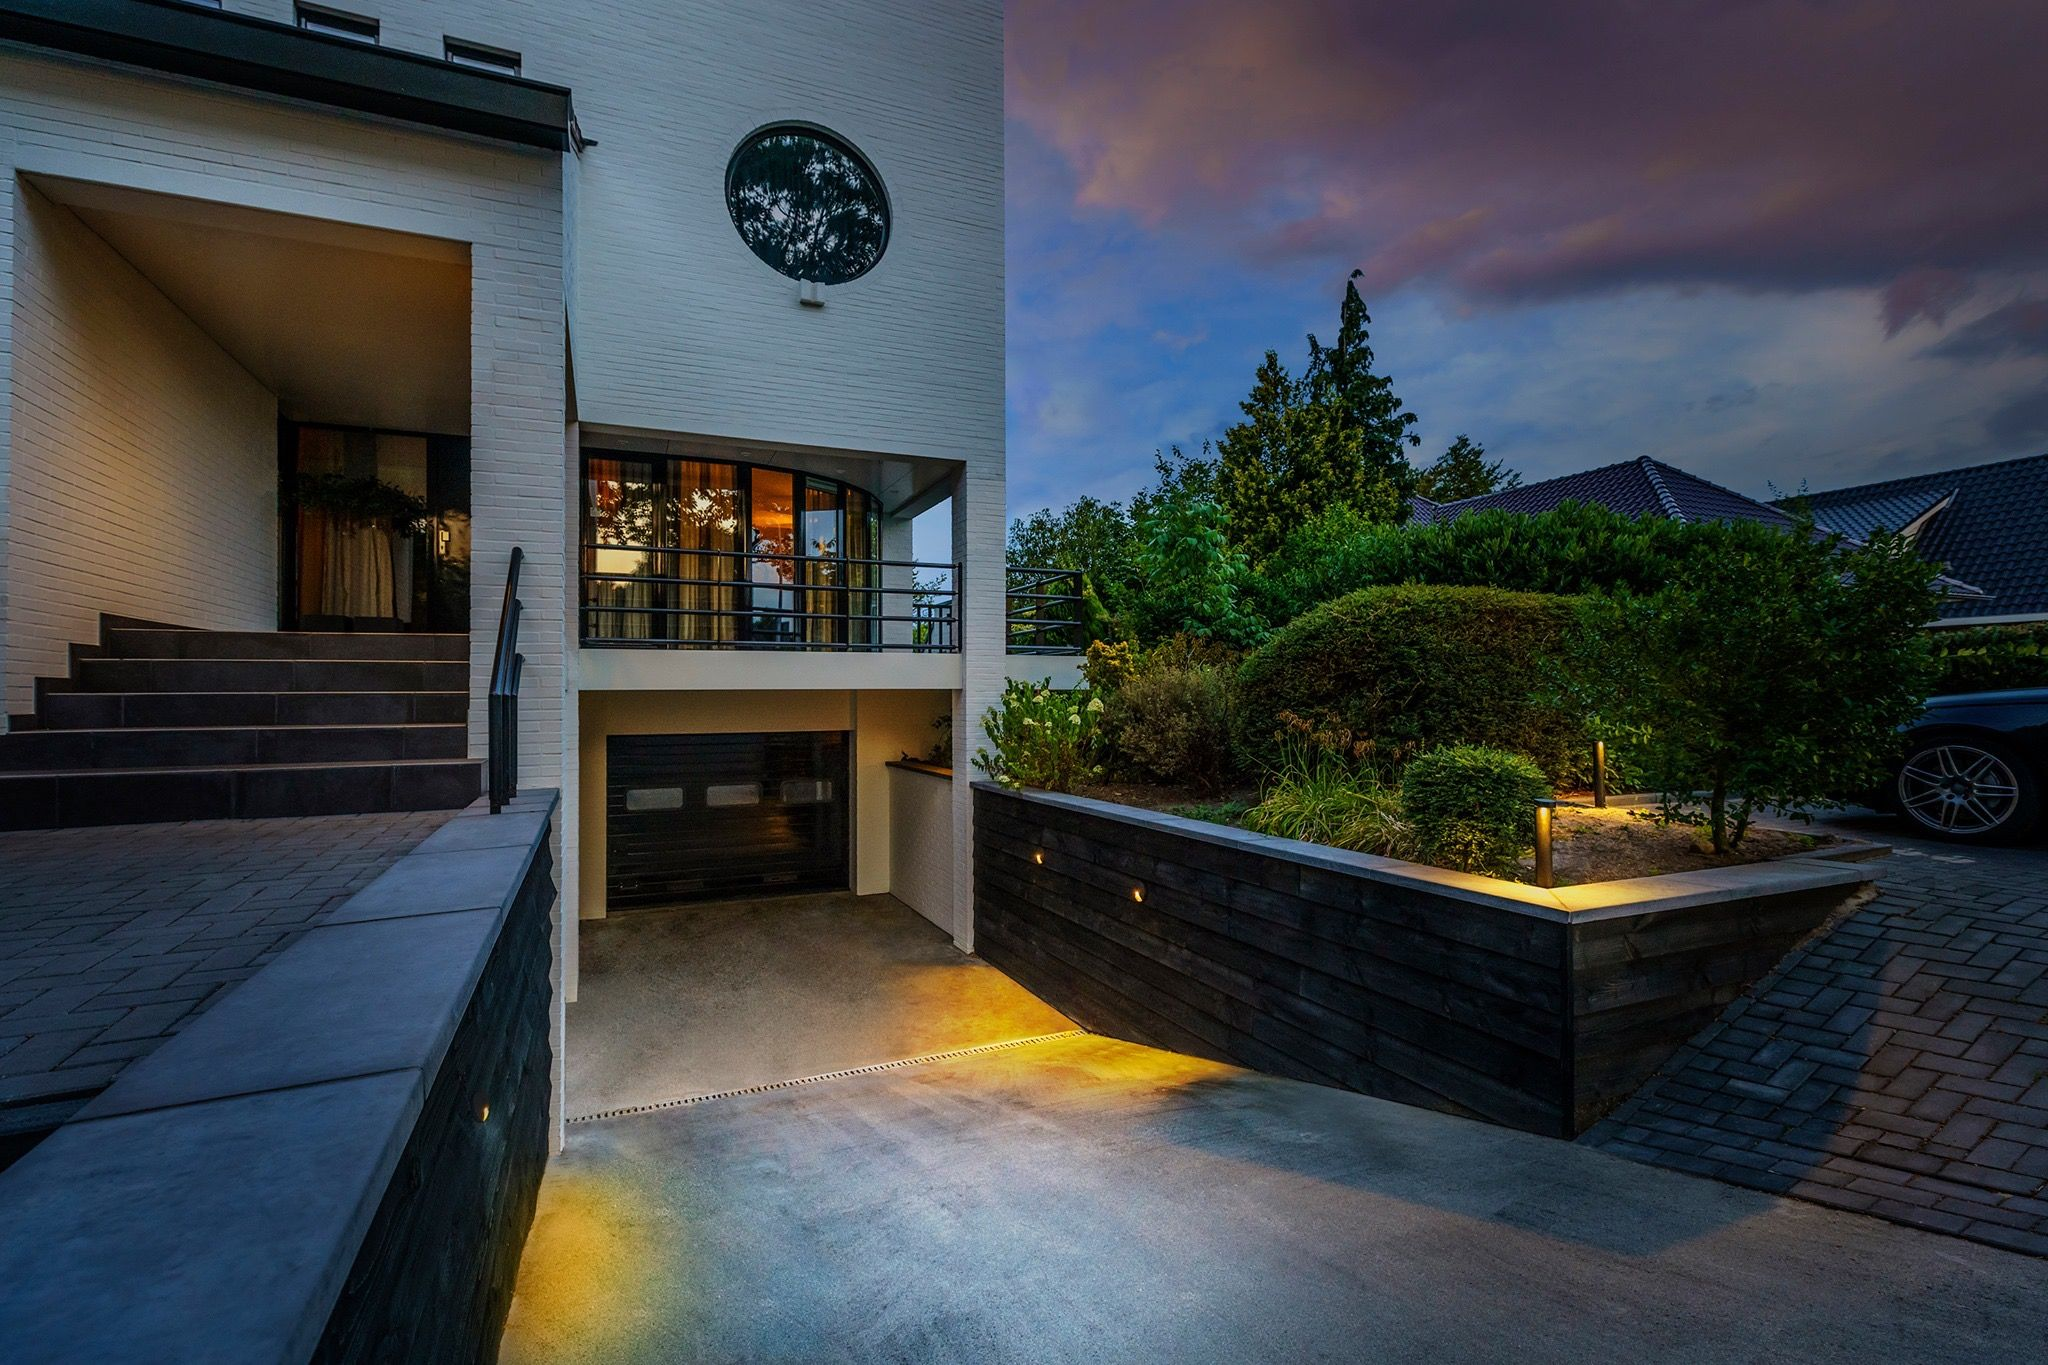 The Kuma Wall Light In Action A Stunning Mix Of Lights All 12v Plug And Play Easy To Install And Have Outdoor Lighting Systems House Styles Outdoor Gardens